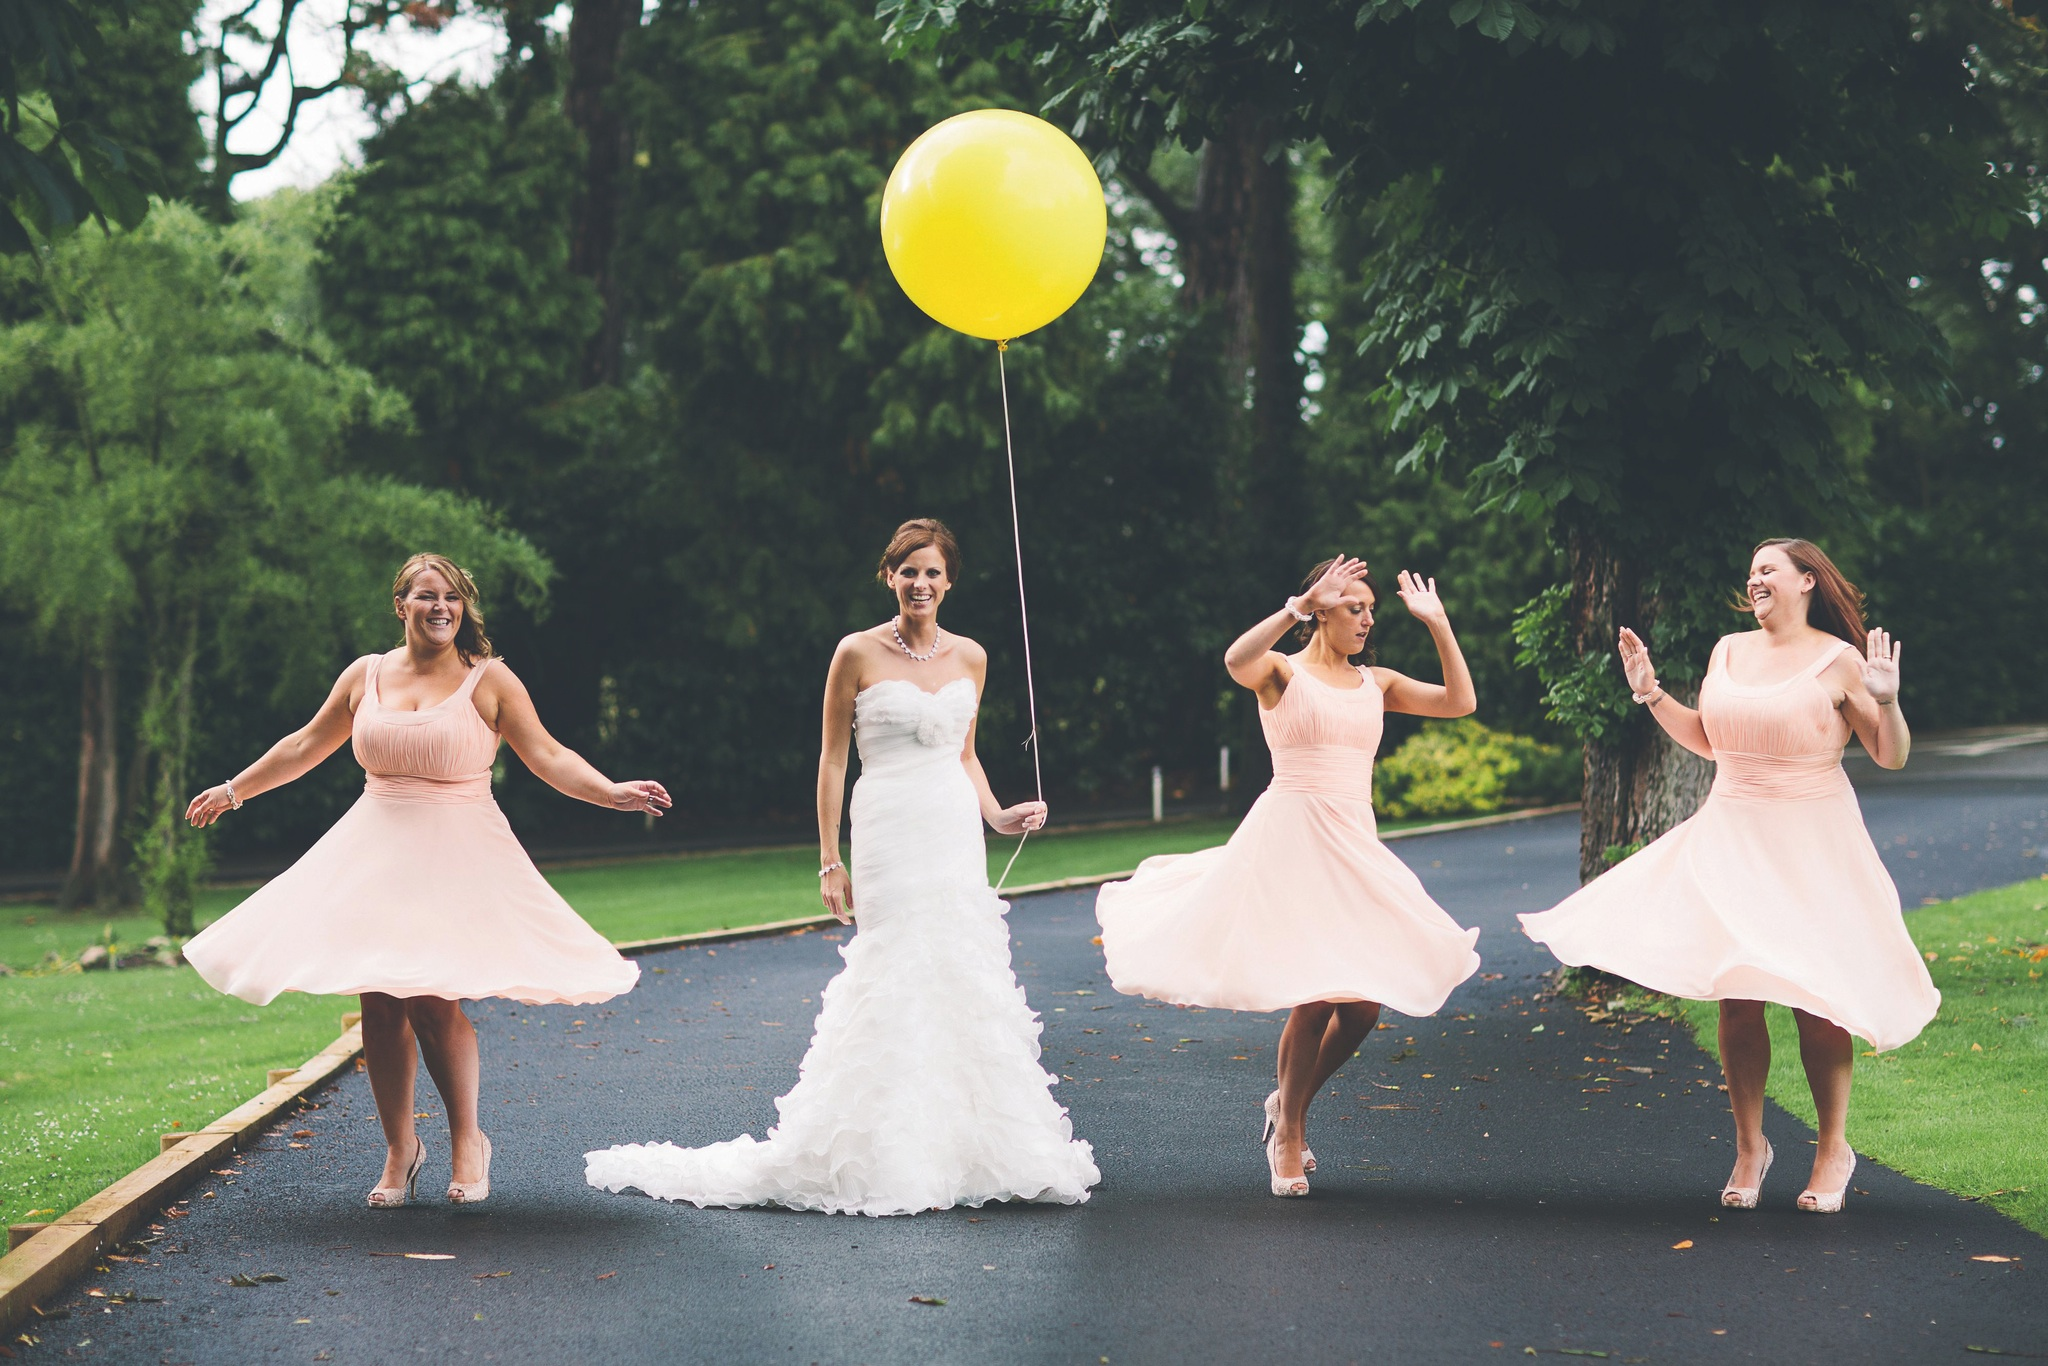 Having bridesmaids is one of the biggest wedding day traditions, but are they necessary? Here are some of the reasons brides are less likely to have them!